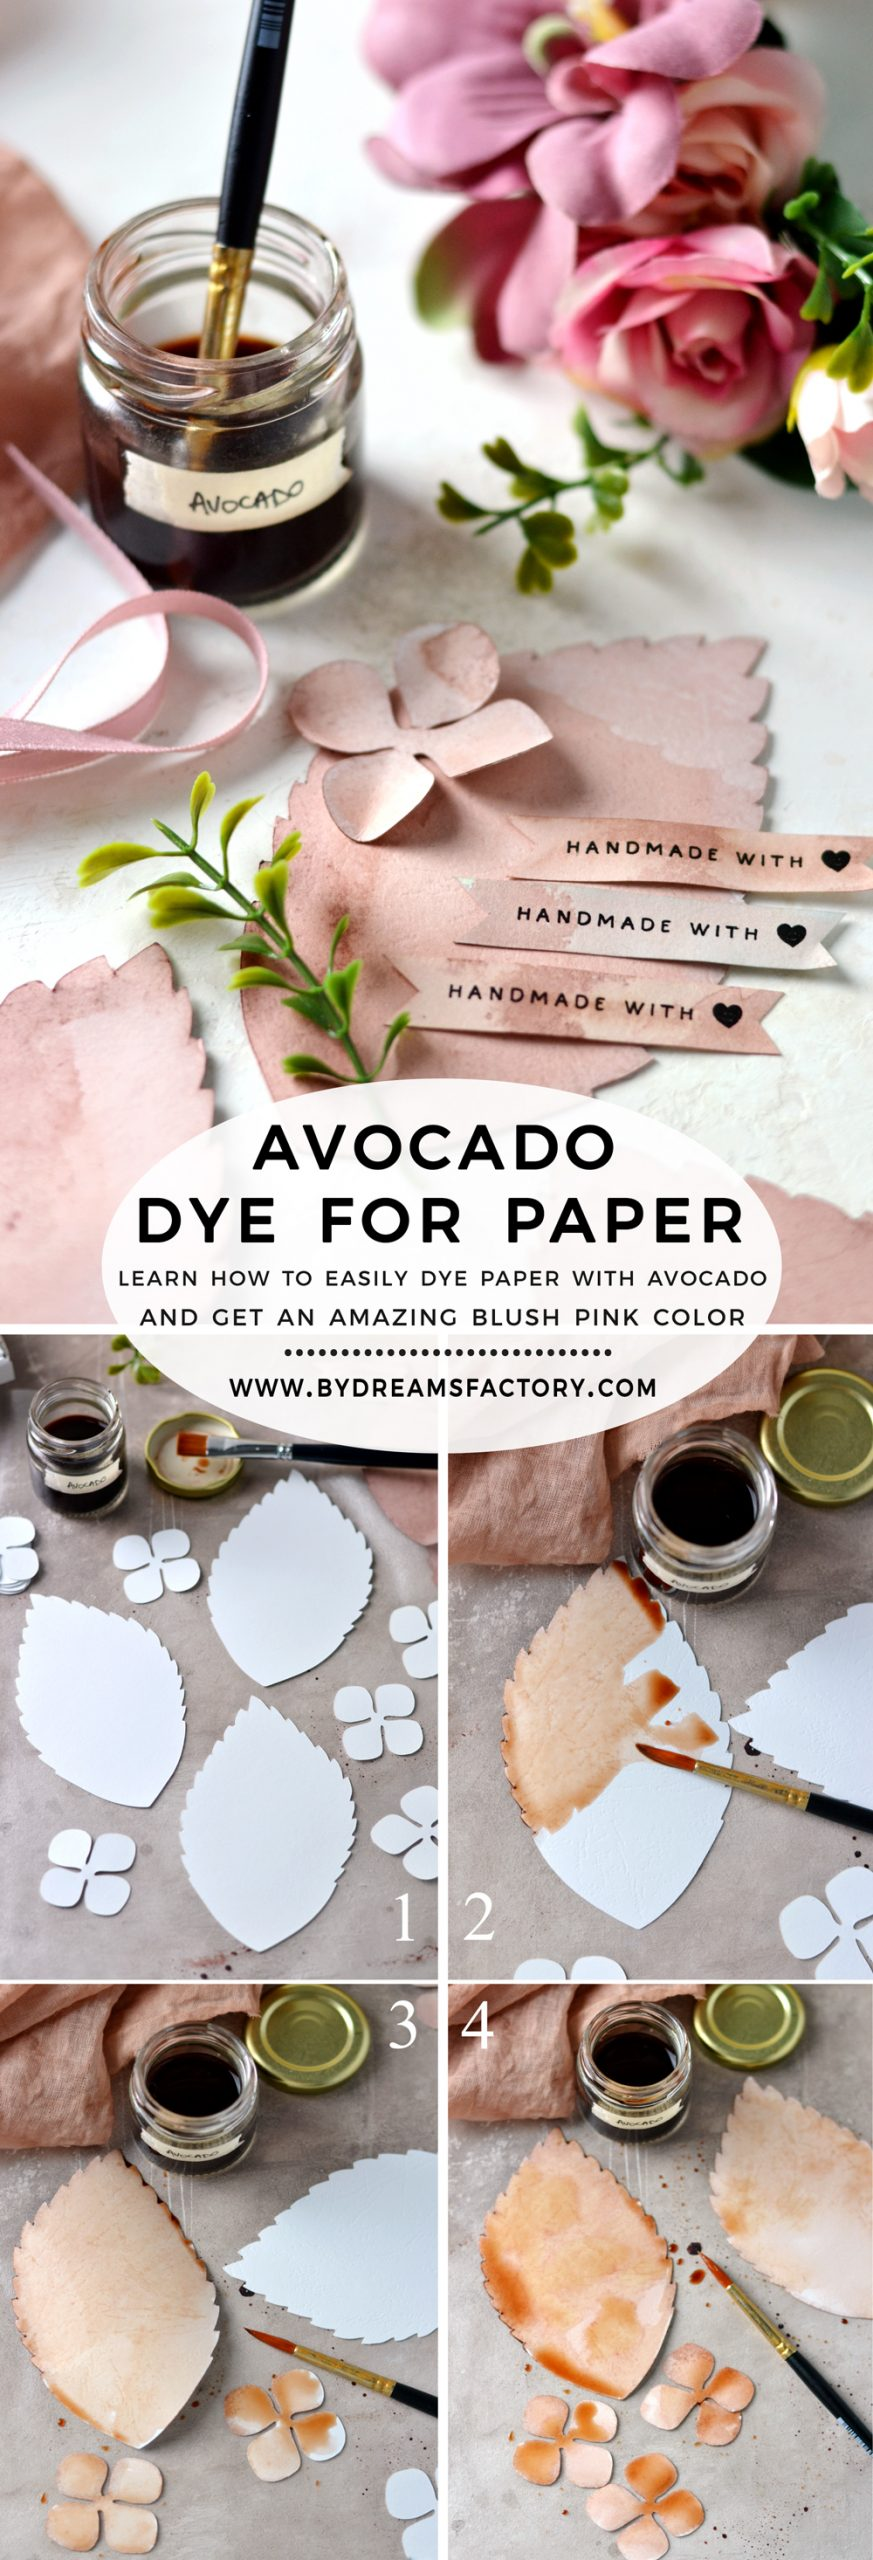 How to make Avocado Dye for Paper